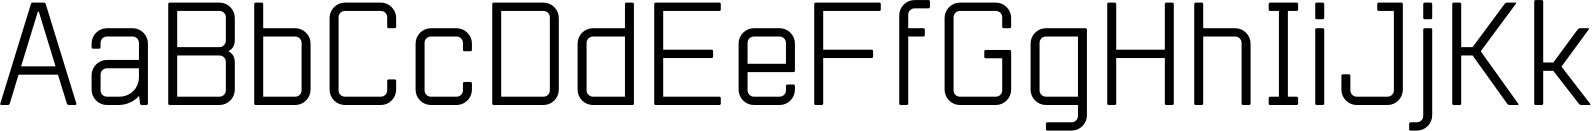 Mensura Regular Font